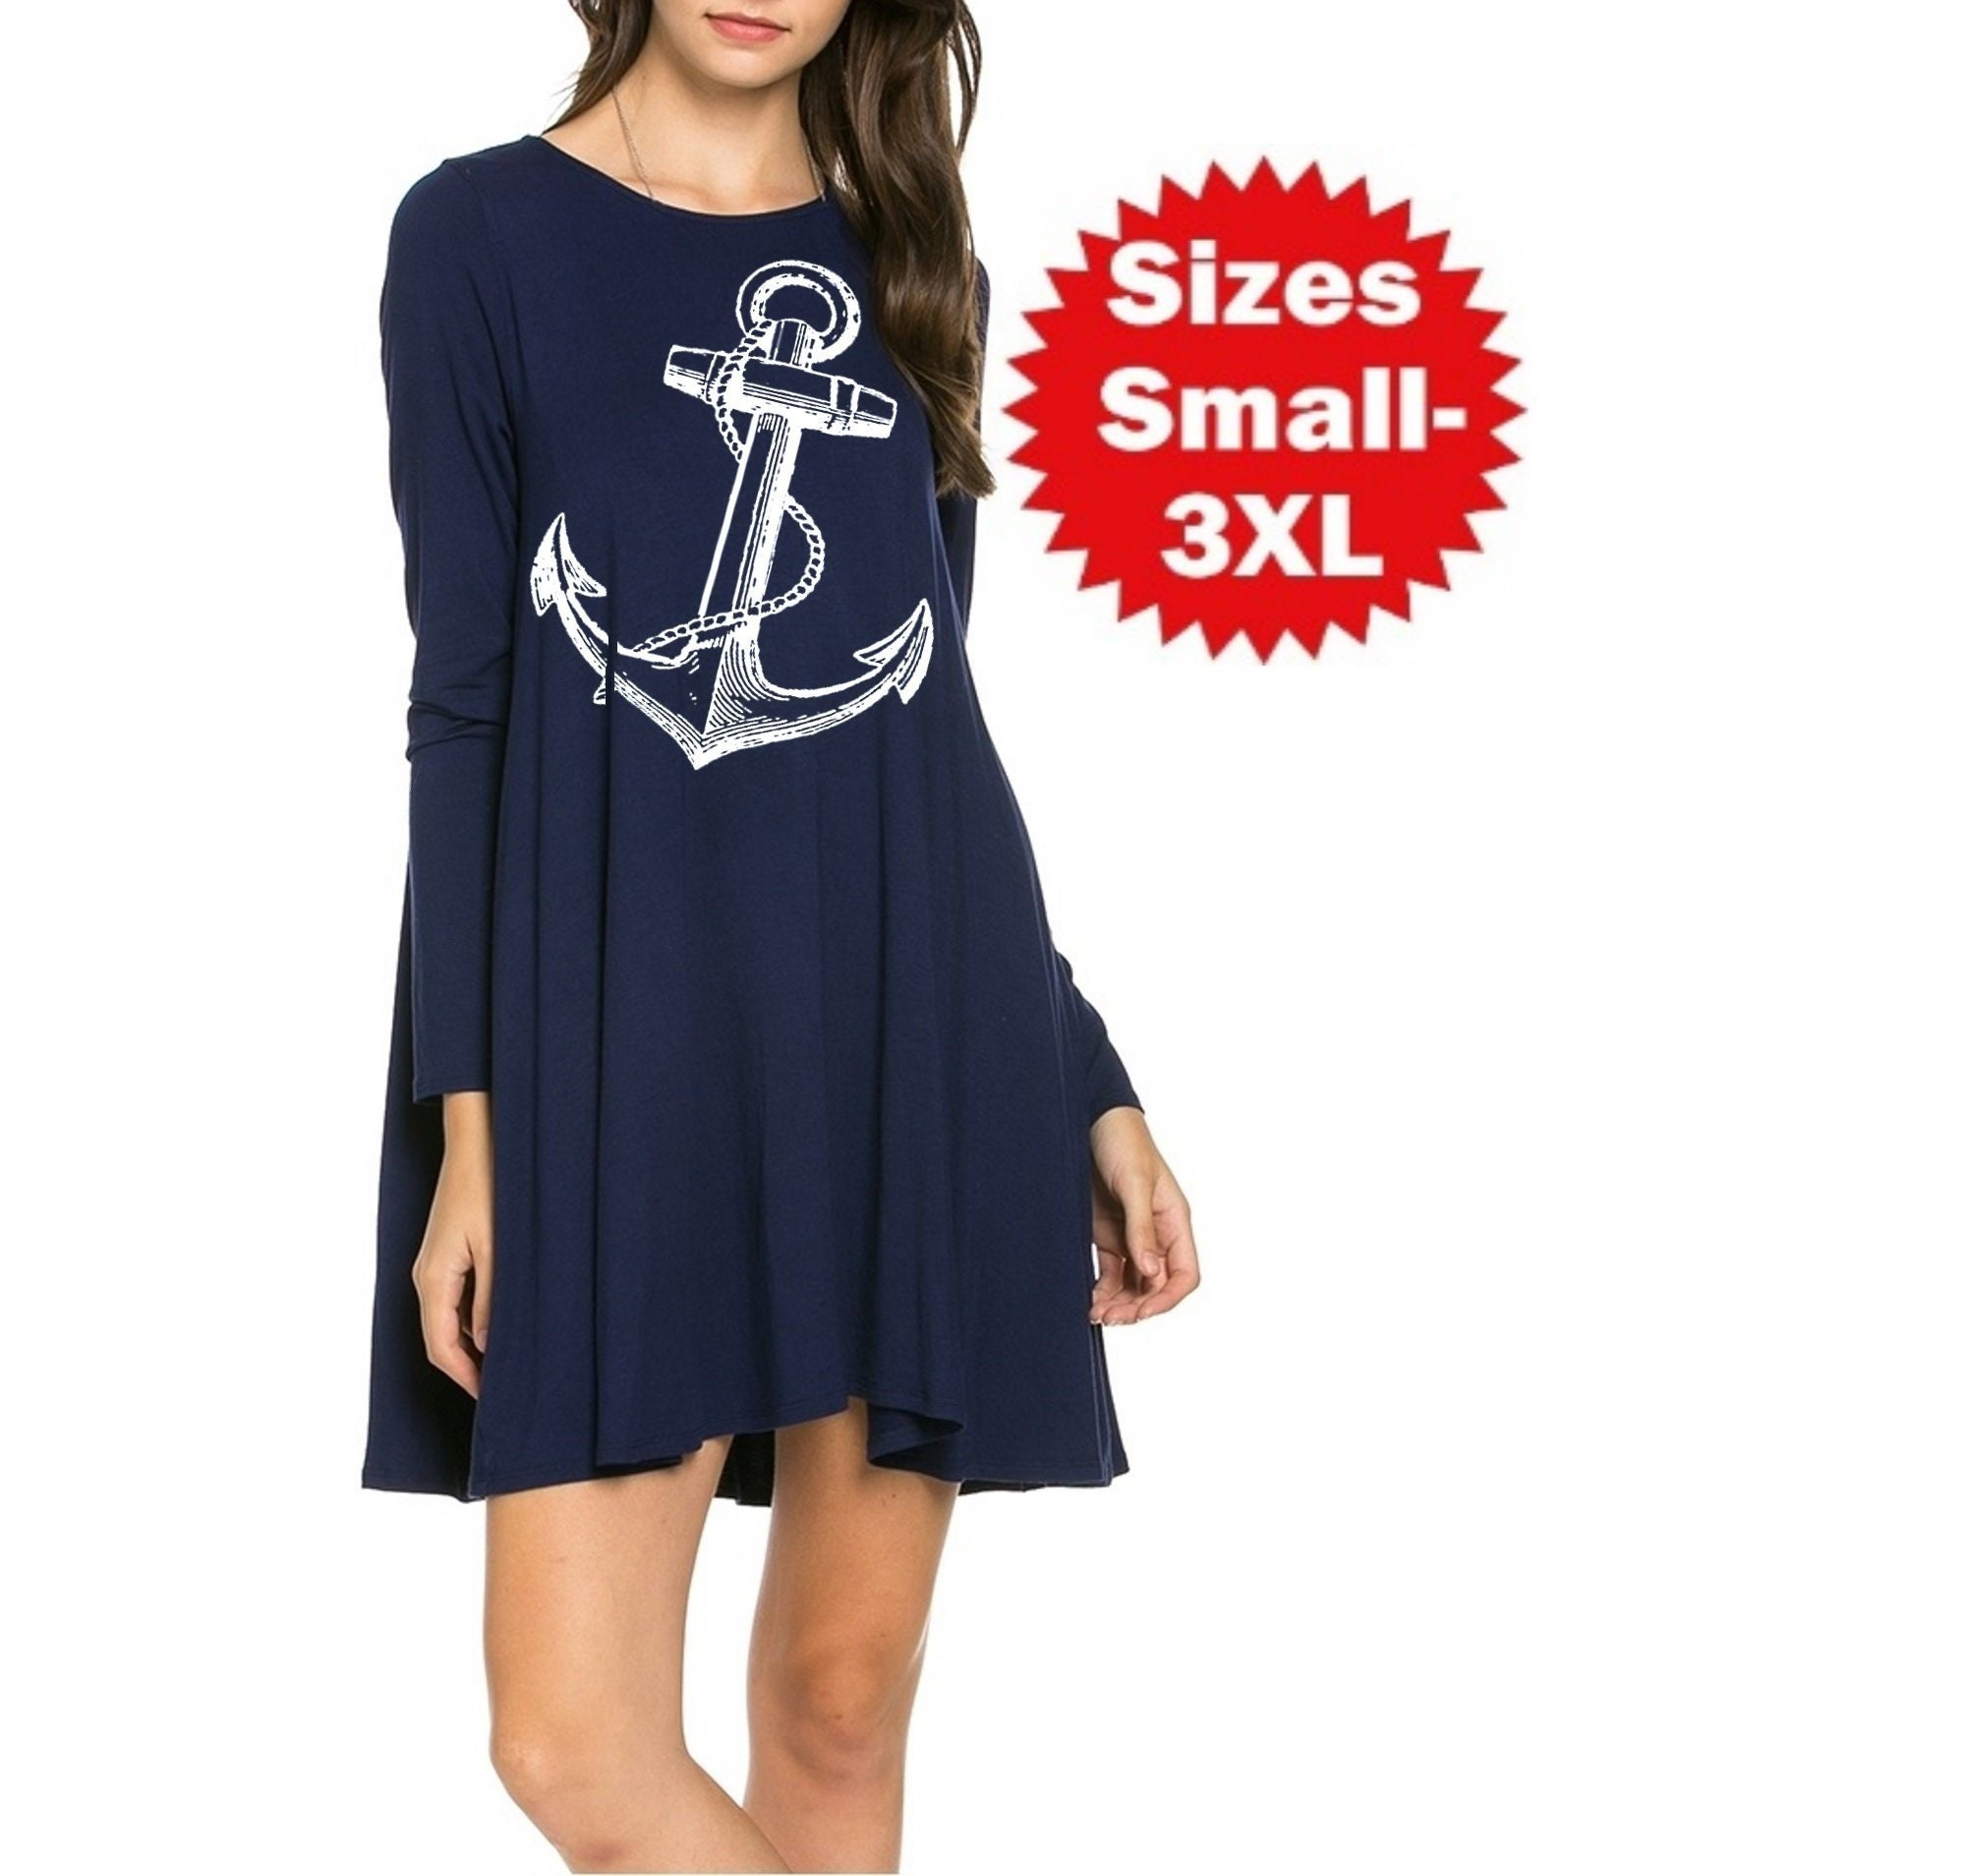 Nautical Anchor Dress Plus Size Clothing Solid Anchors Women\'s Sailor  dresses ladies apparel Cute Vintage inspired frockPin Up 3XL